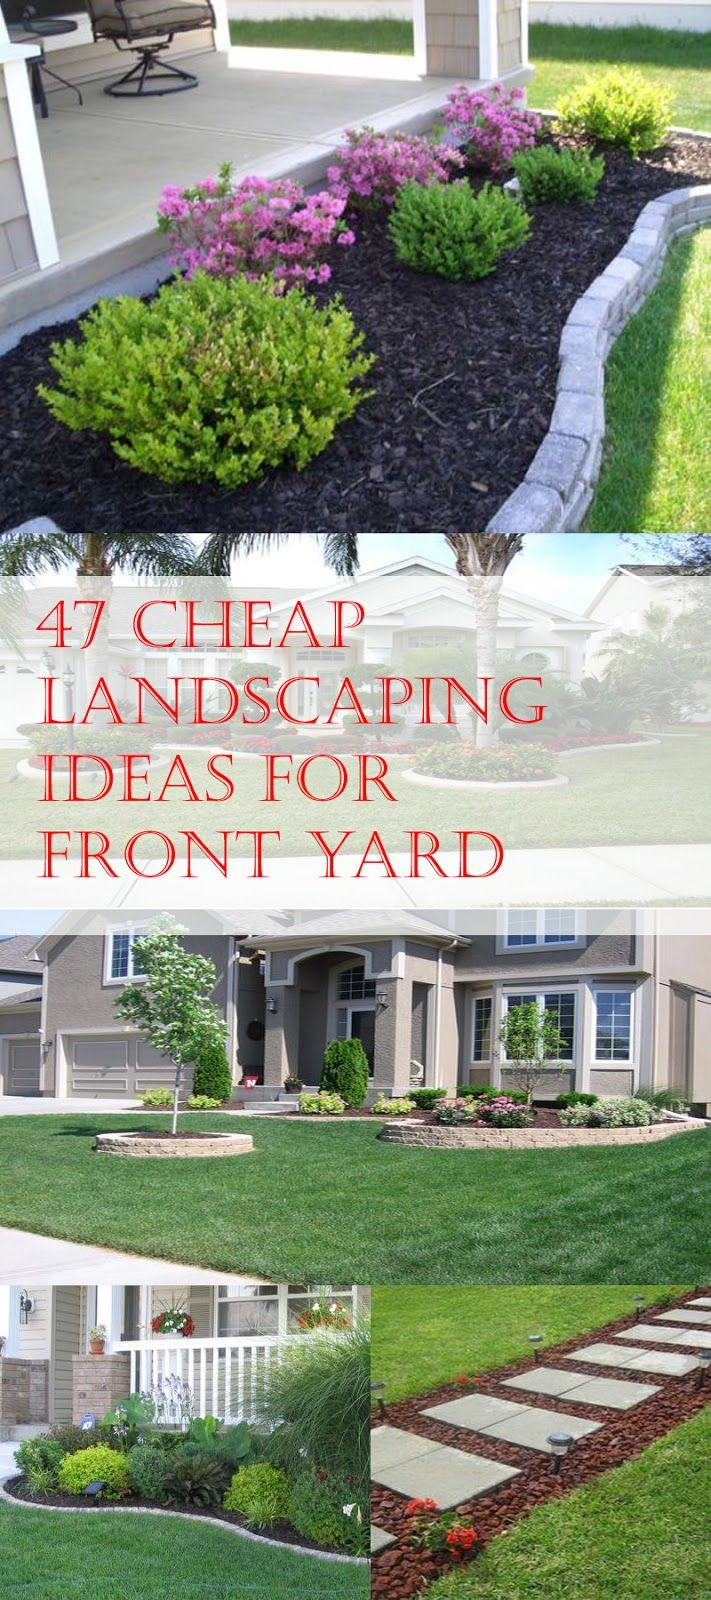 47 cheap landscaping ideas for front yard cheap landscaping ideas simple easy and cheap diy landscaping ideas for front yards workwithnaturefo